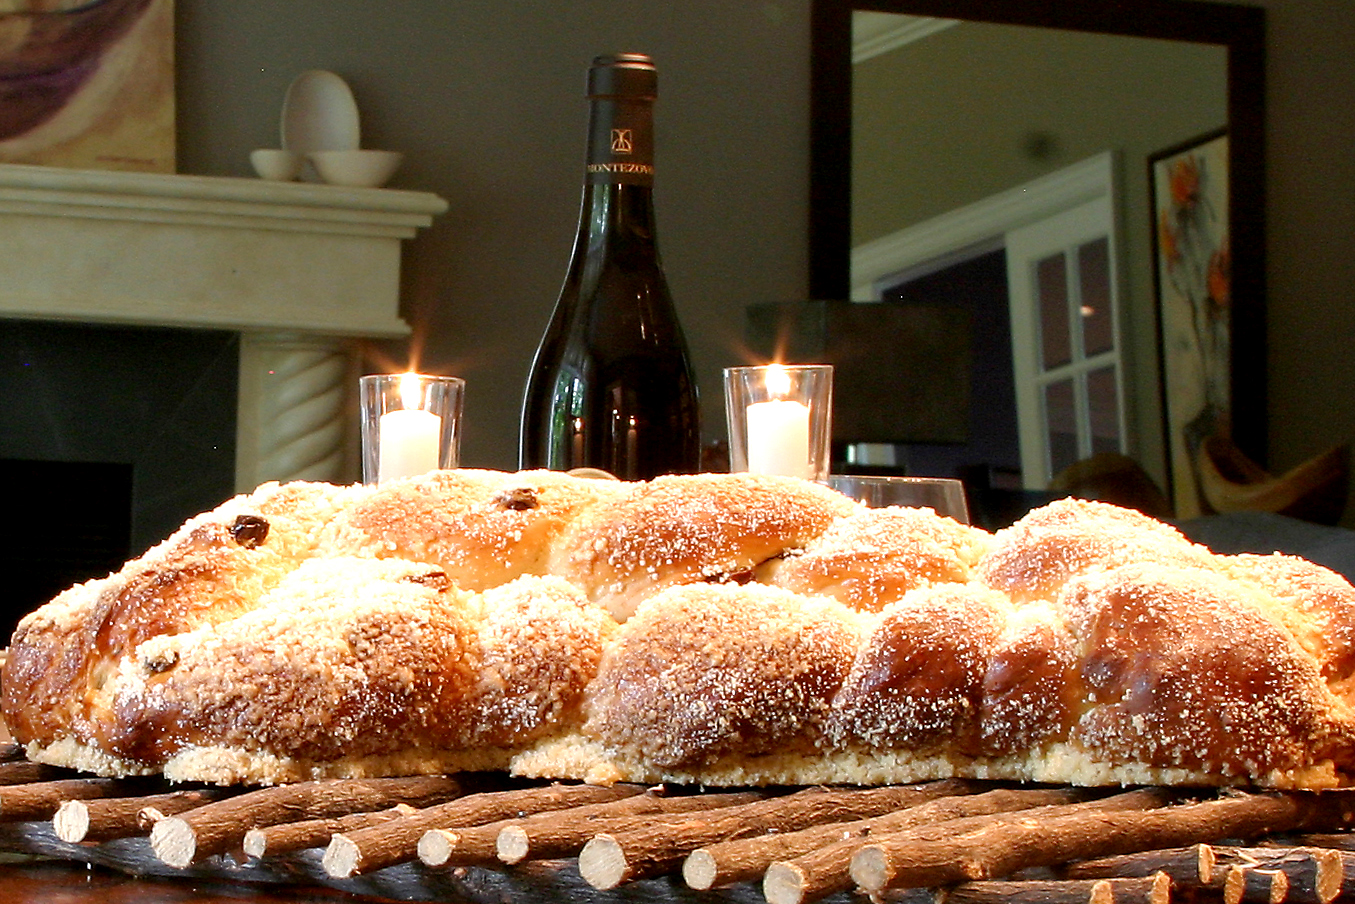 Challah at the table 4